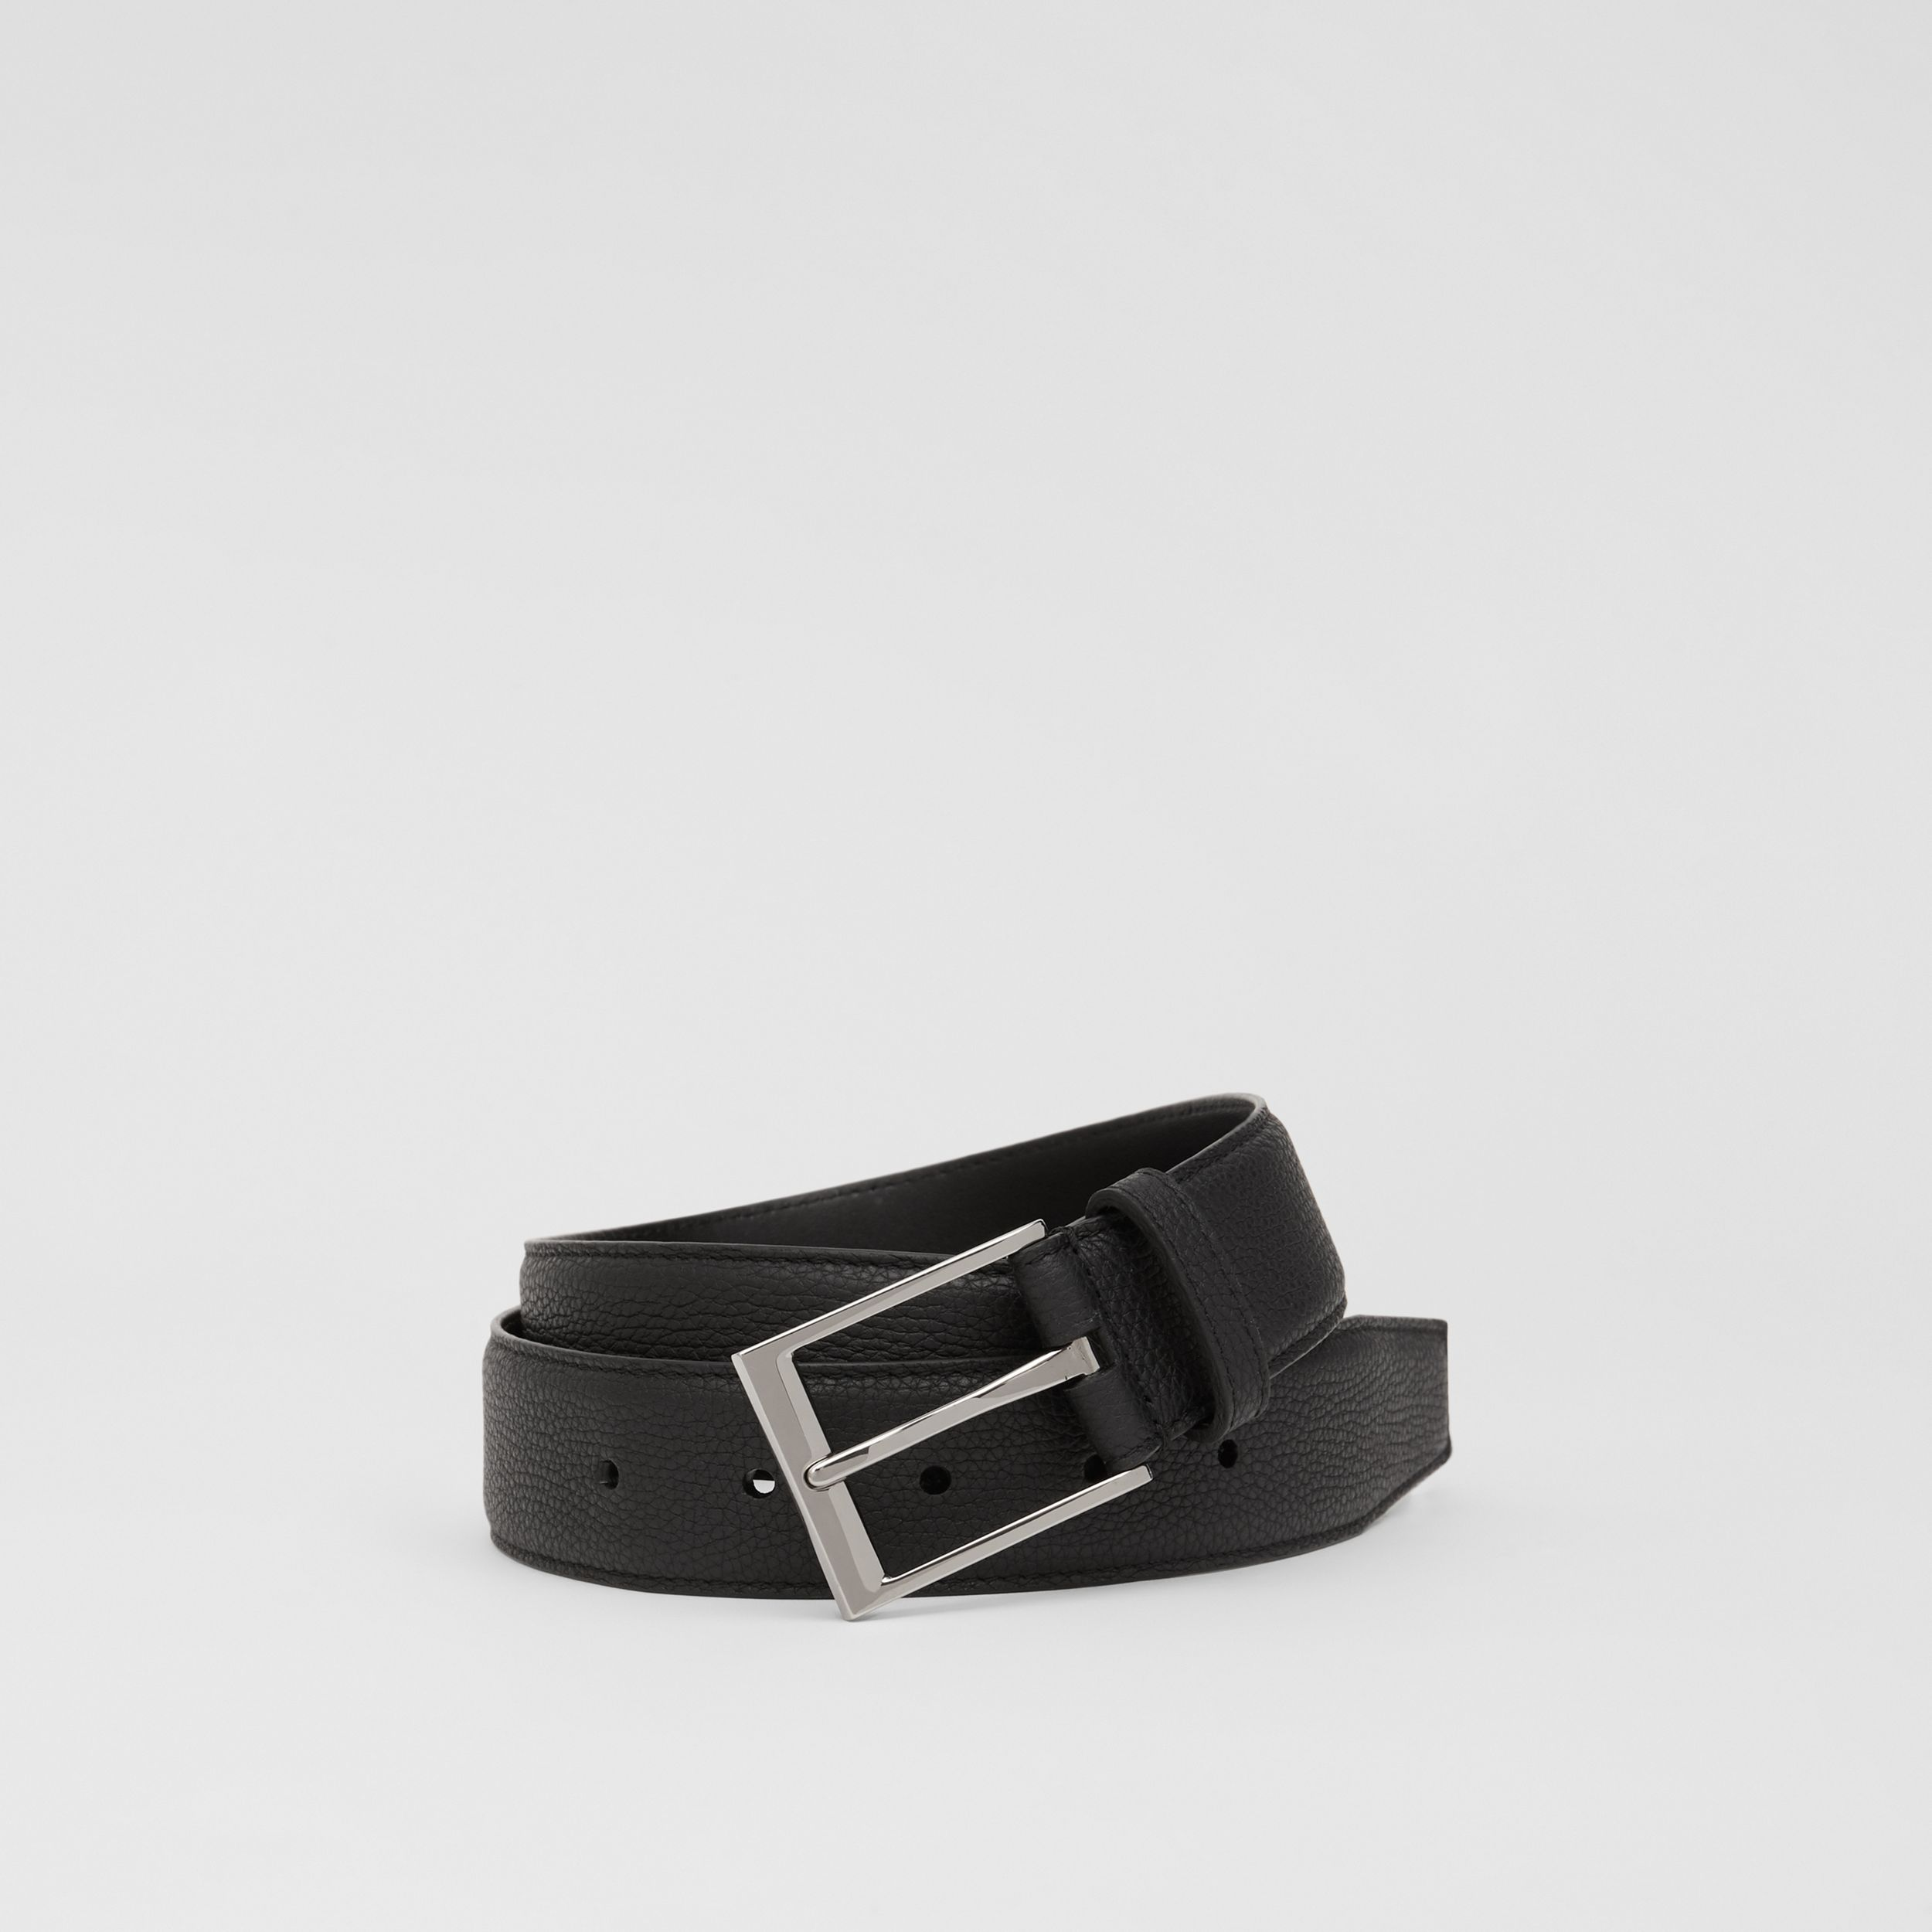 Grainy Leather Belt in Black - Men | Burberry - 1